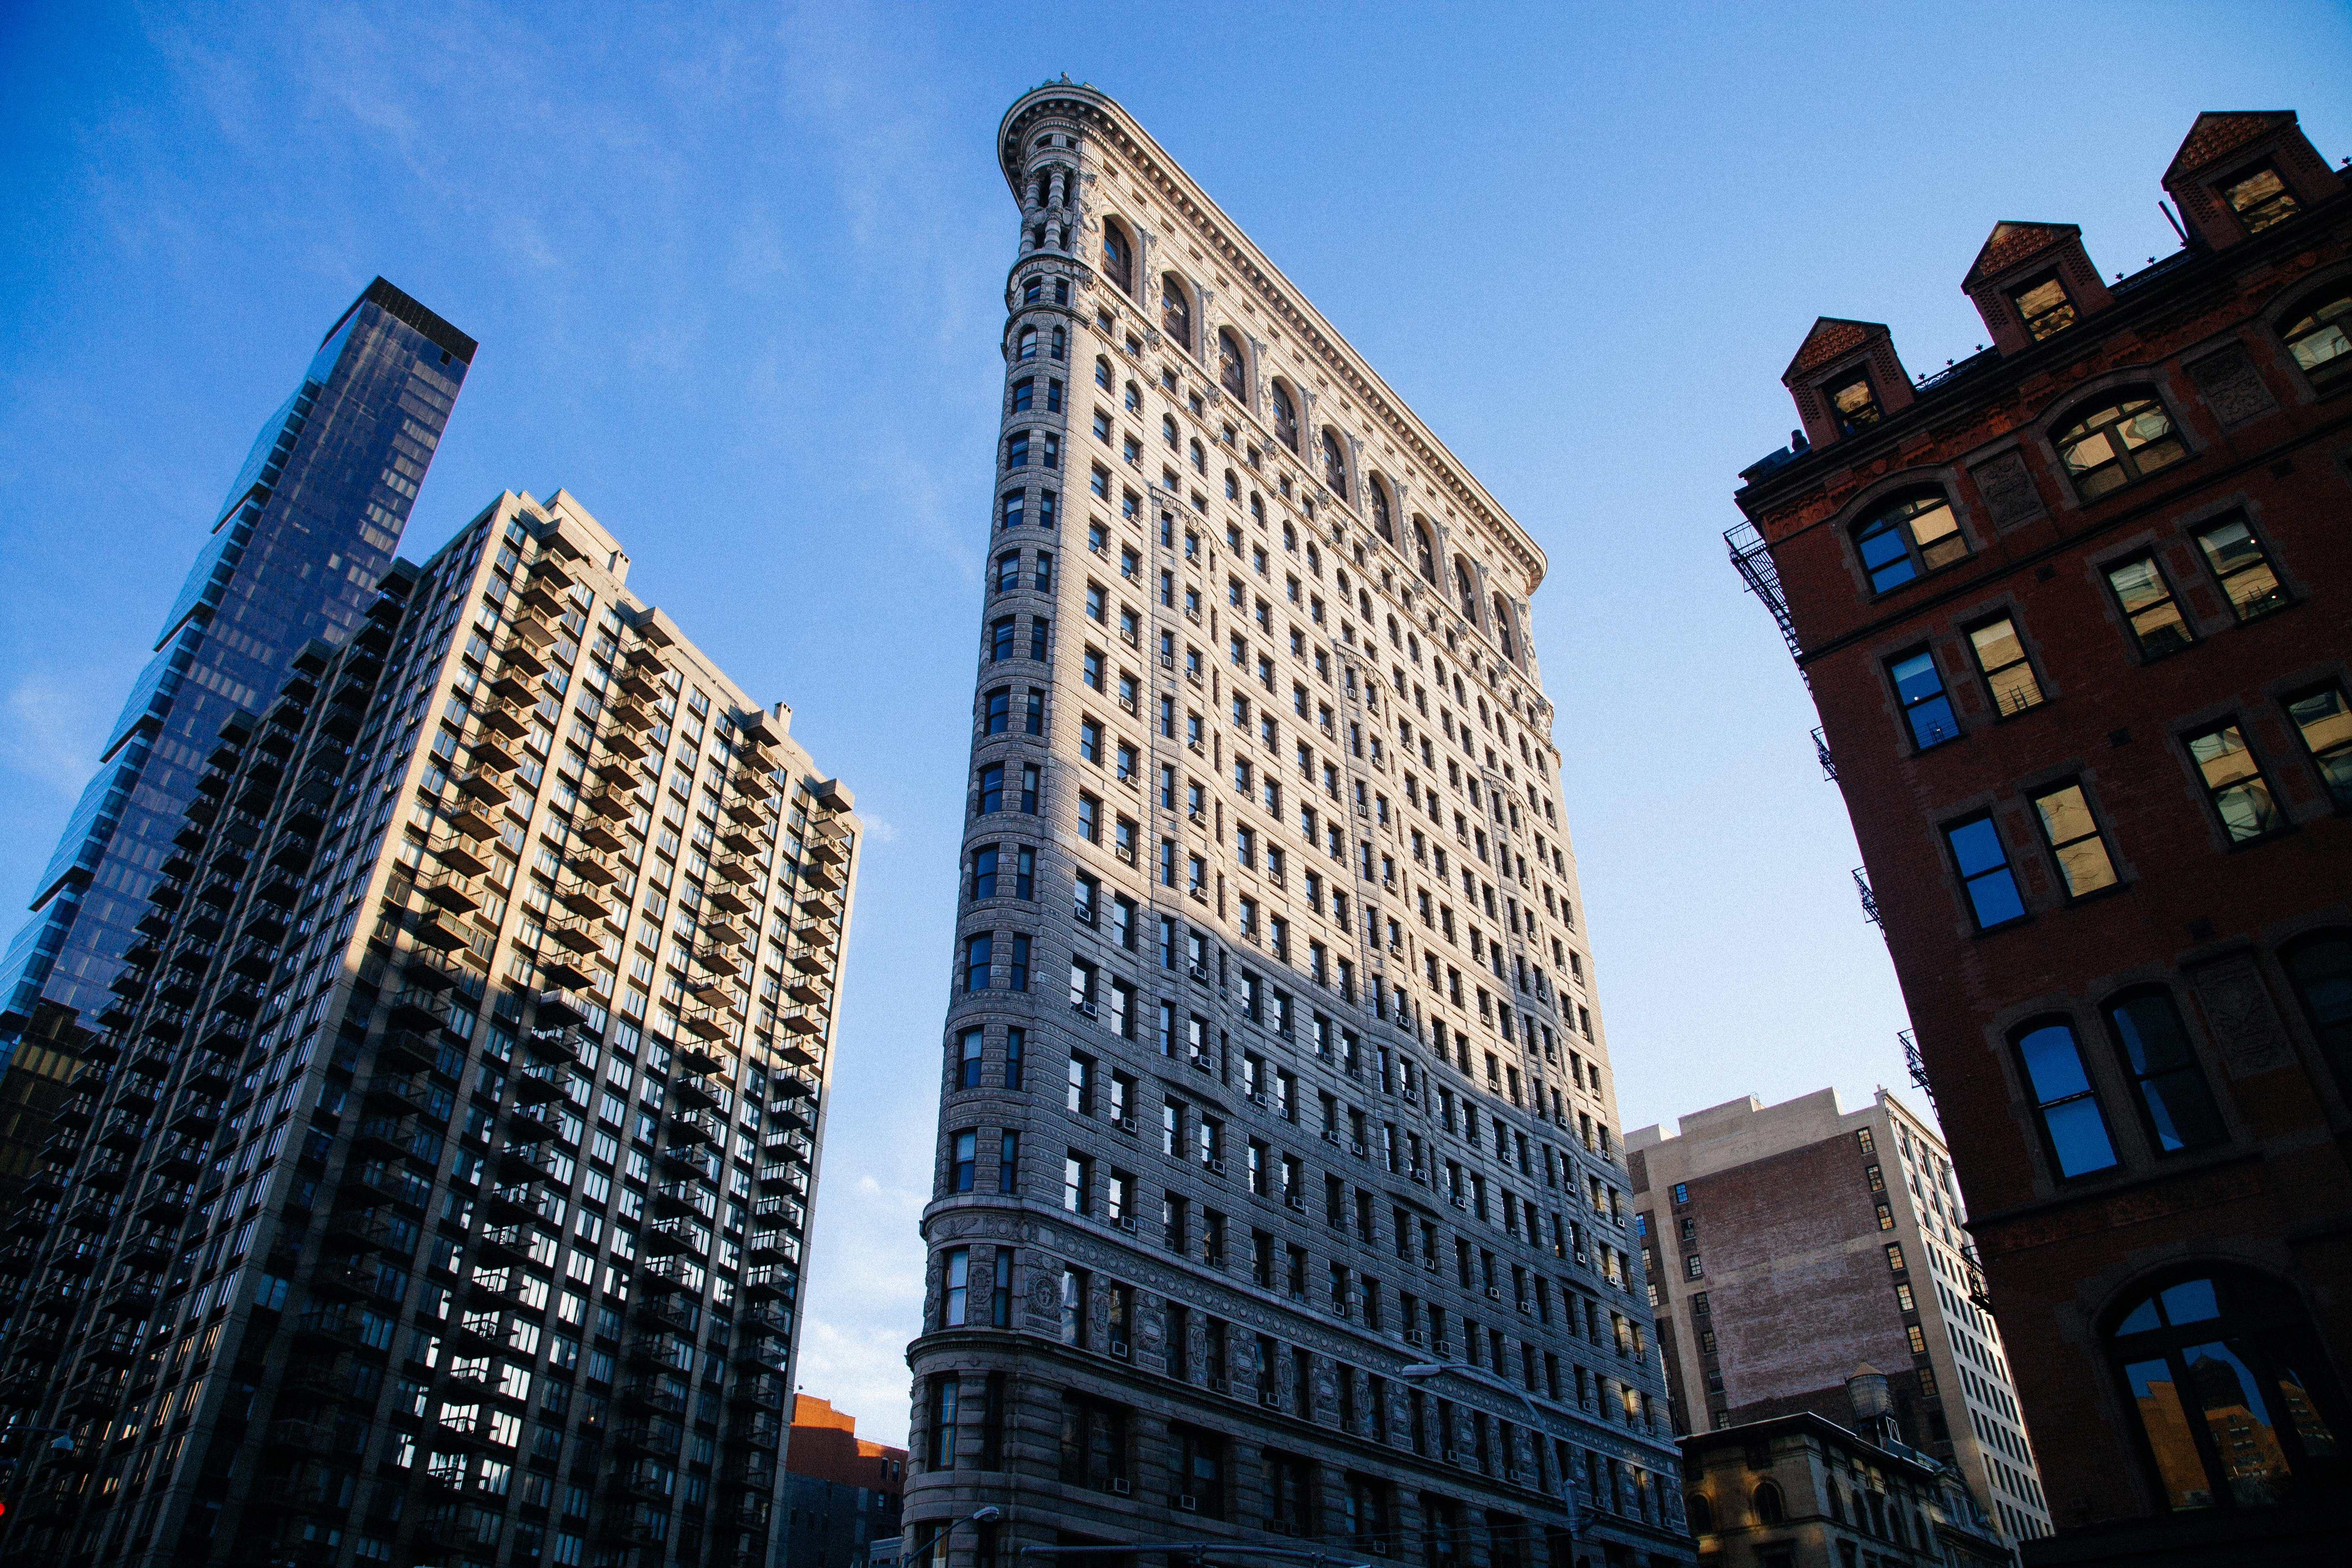 A ground view of the iconic Flatiron building in Manhattan, New York City